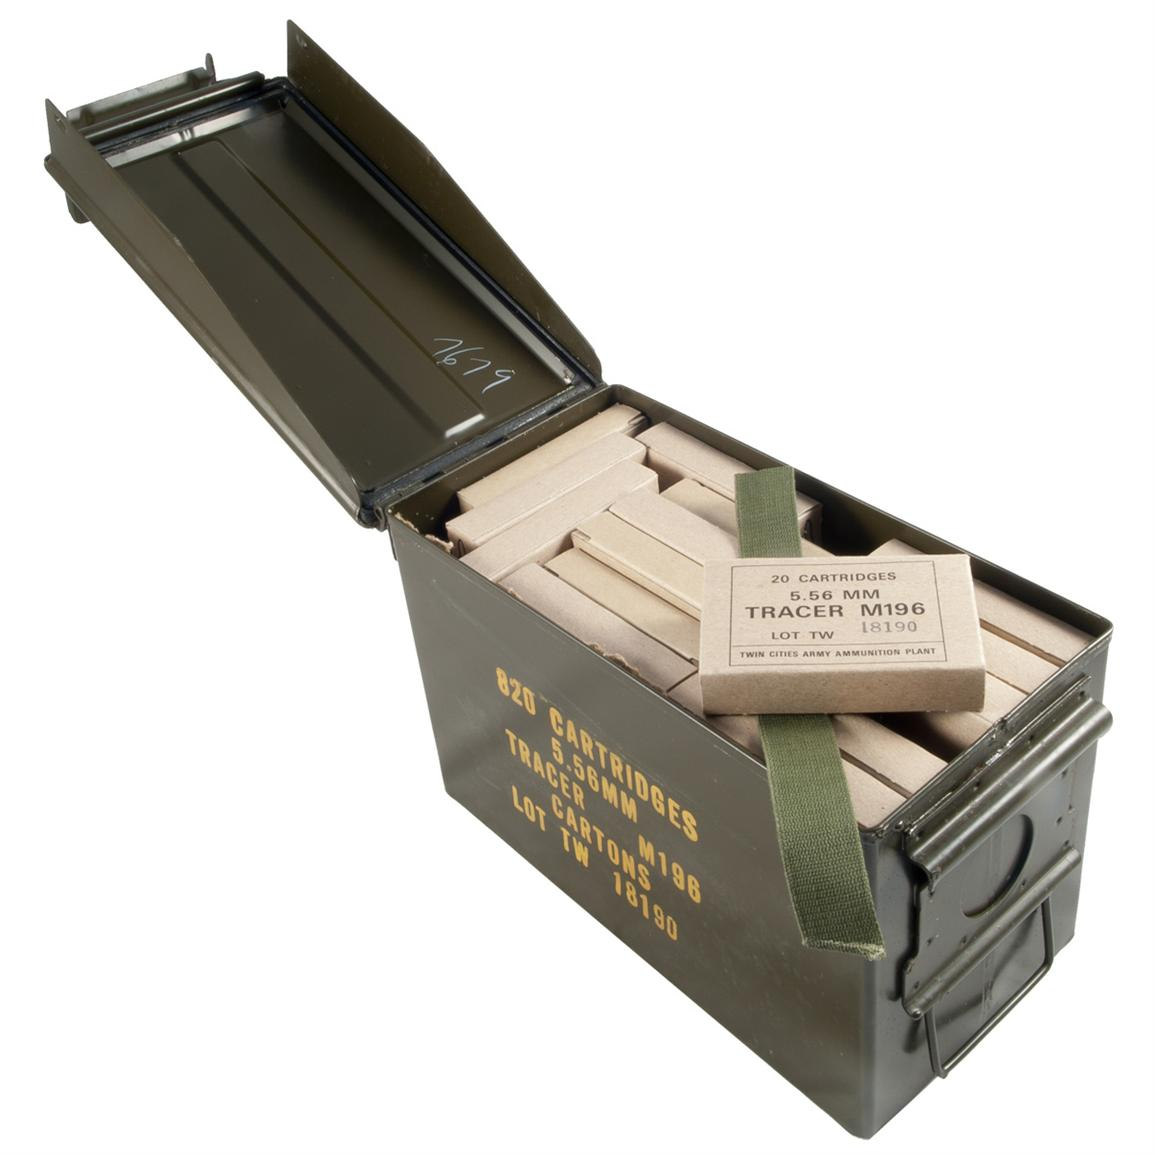 820 rounds Lake City .223 (5.56x45mm) 54-grain Tracer Ammo